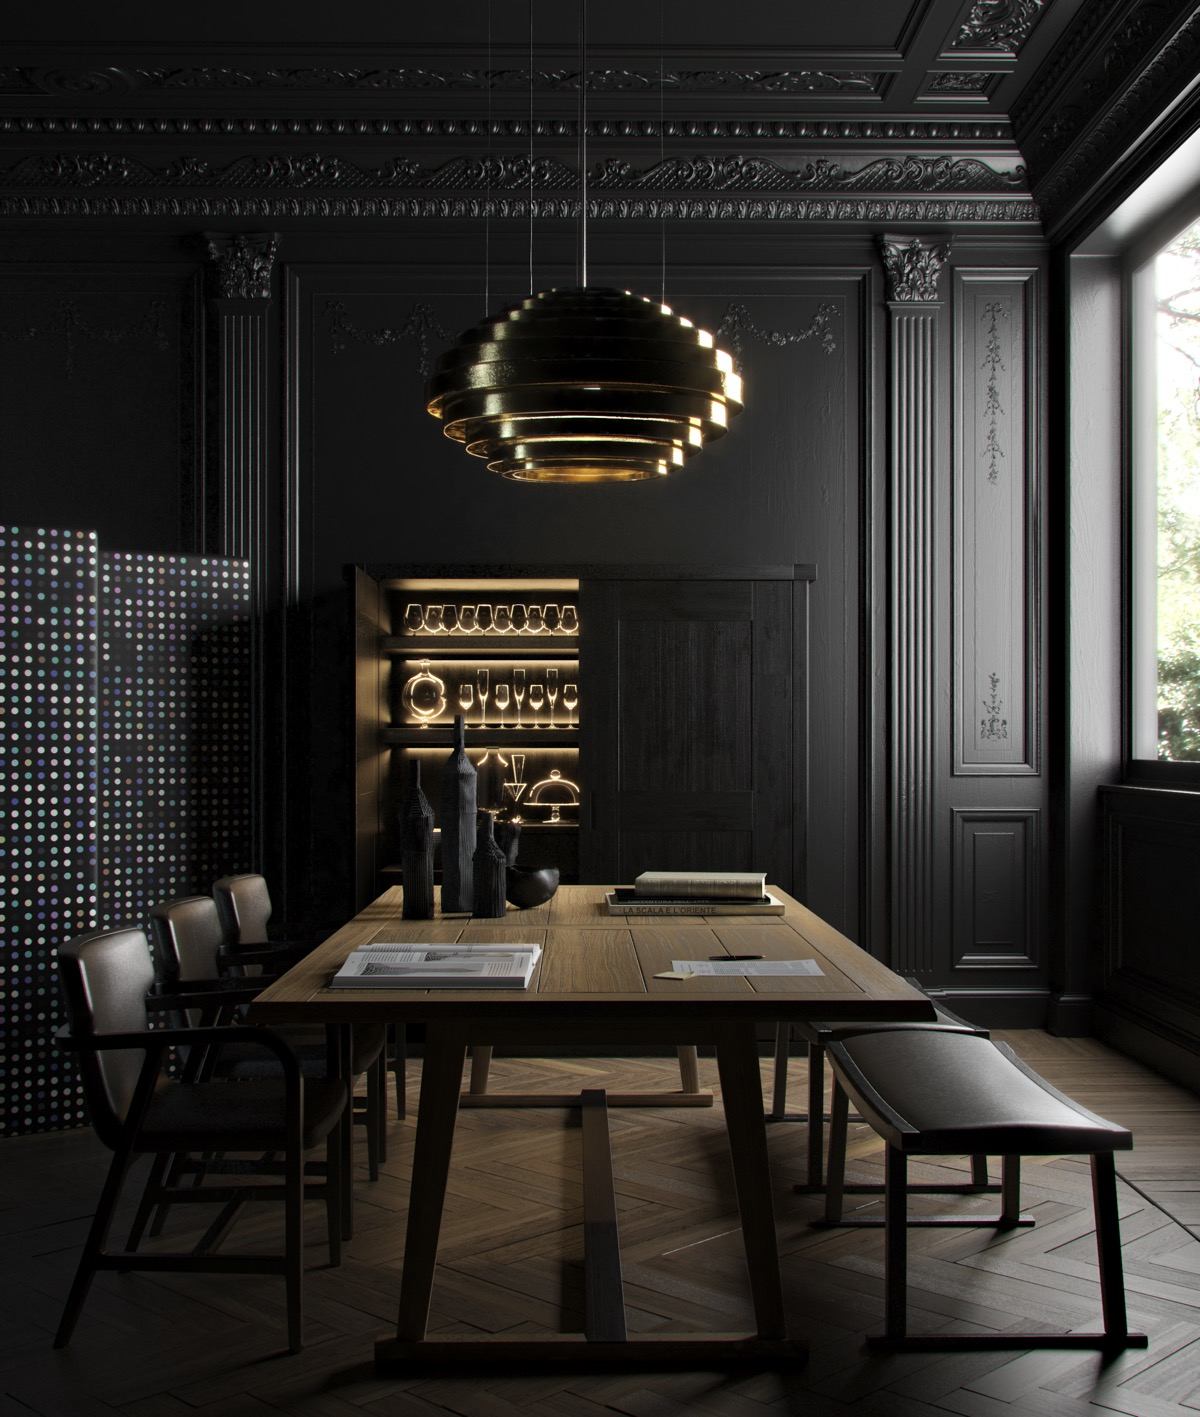 33 Black Dining Rooms That Your Dinner Guests Will Adore images 2